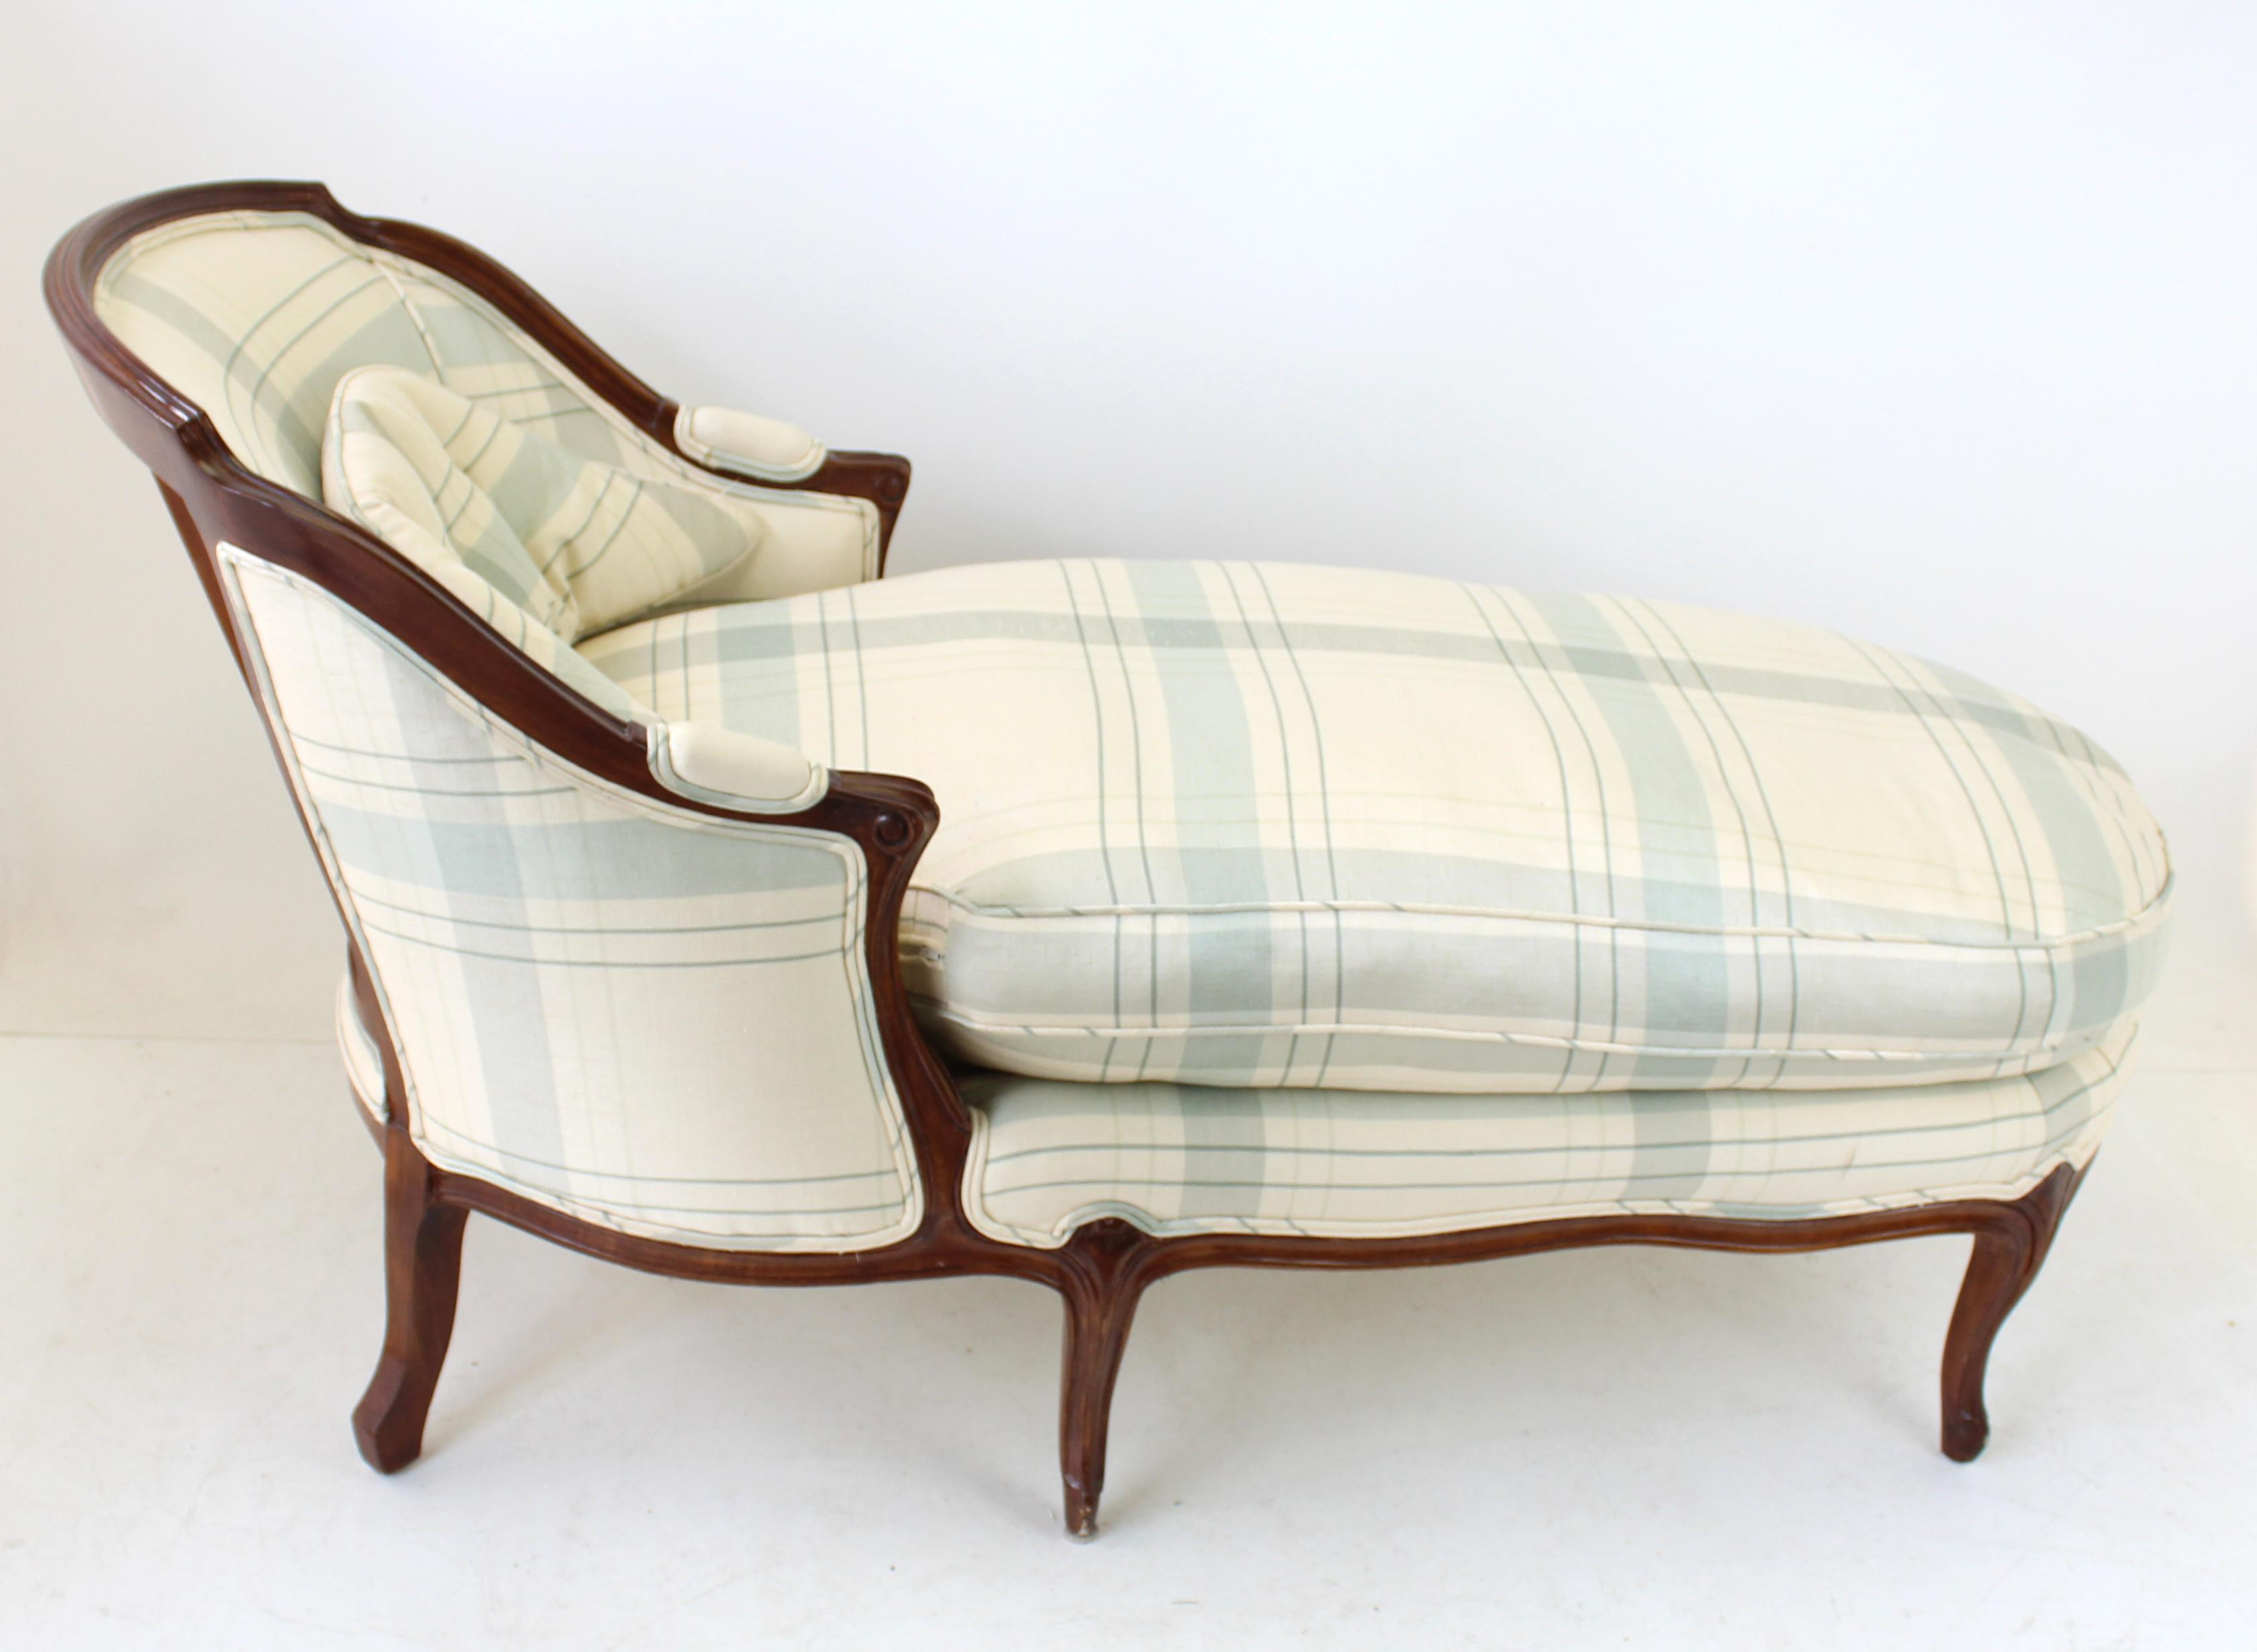 Vintage French Country Chaise Lounge - Image 2 of 9  sc 1 st  Chairish : chaise lounge vintage - Sectionals, Sofas & Couches